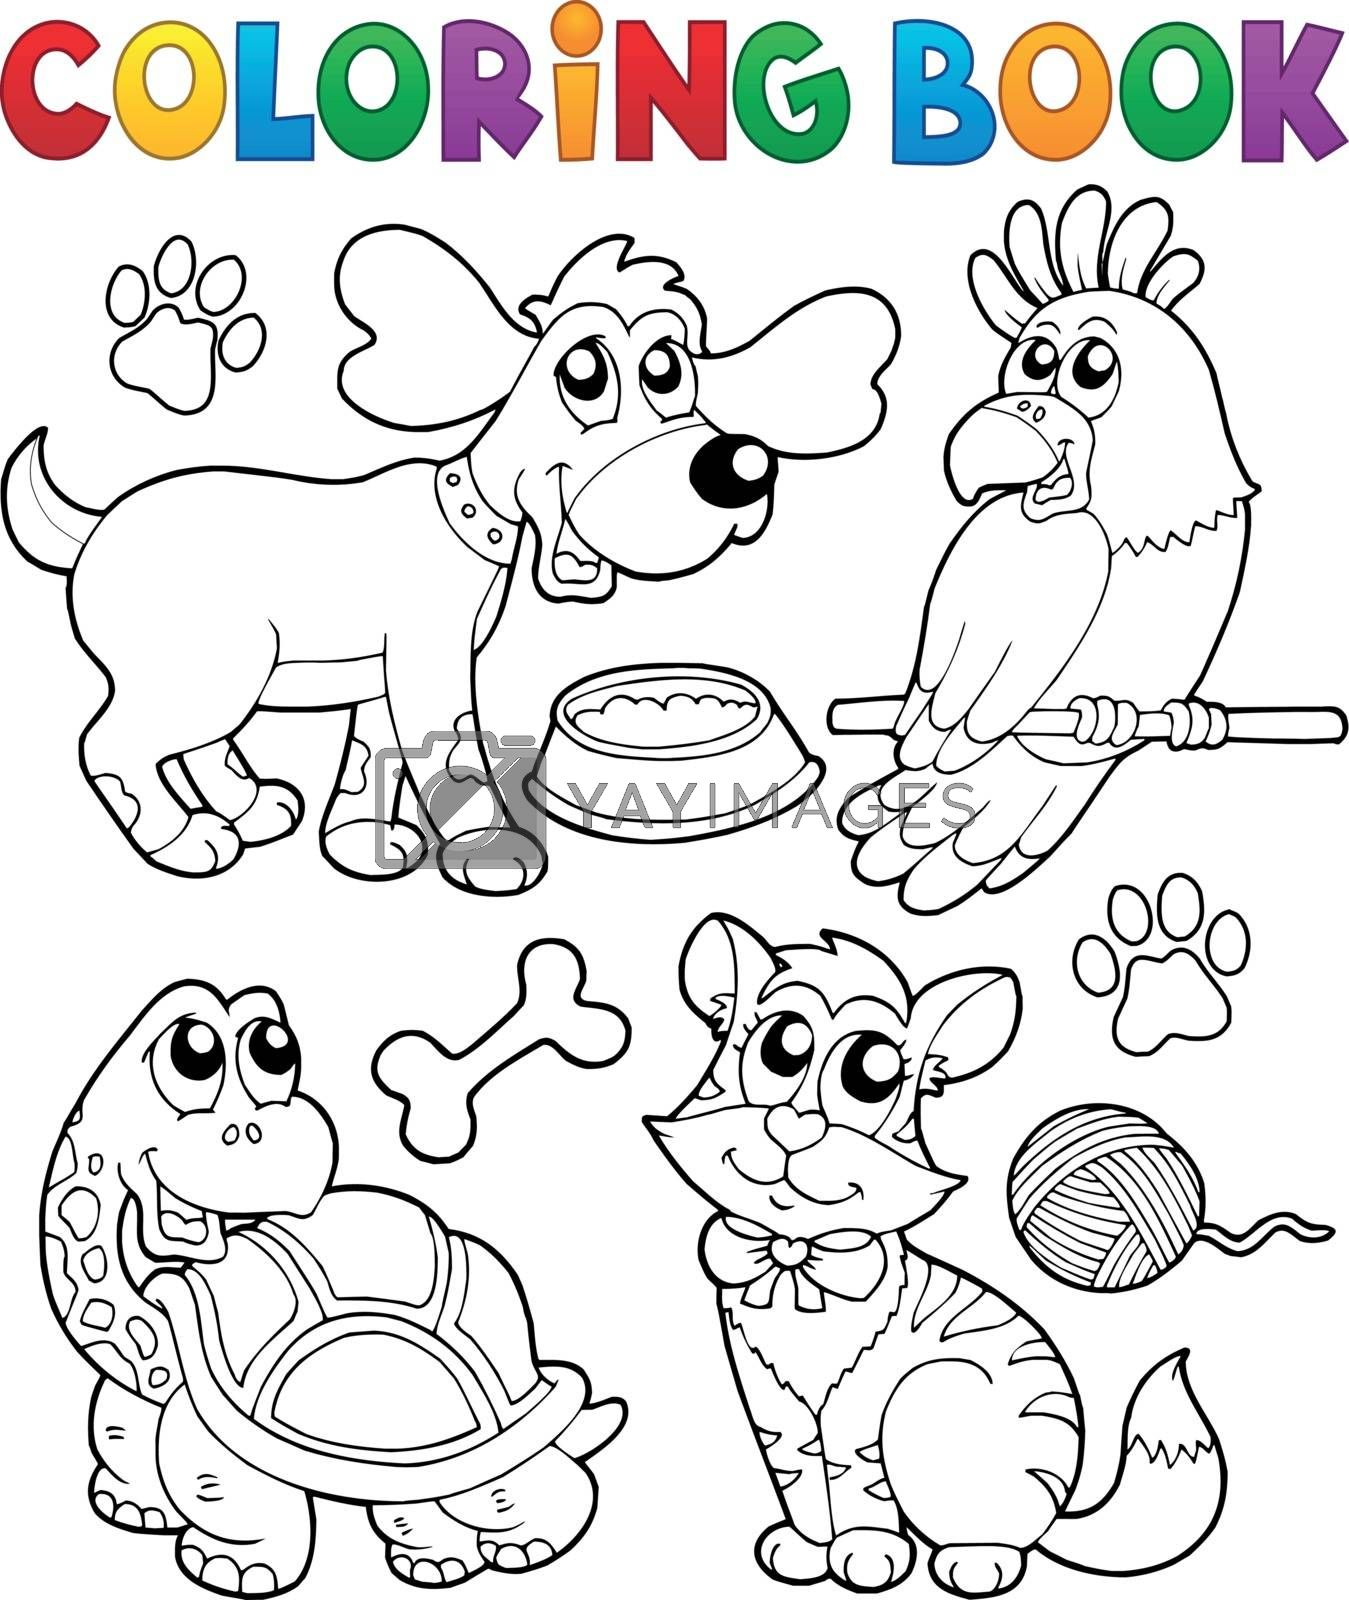 Coloring book with pets 3 by clairev